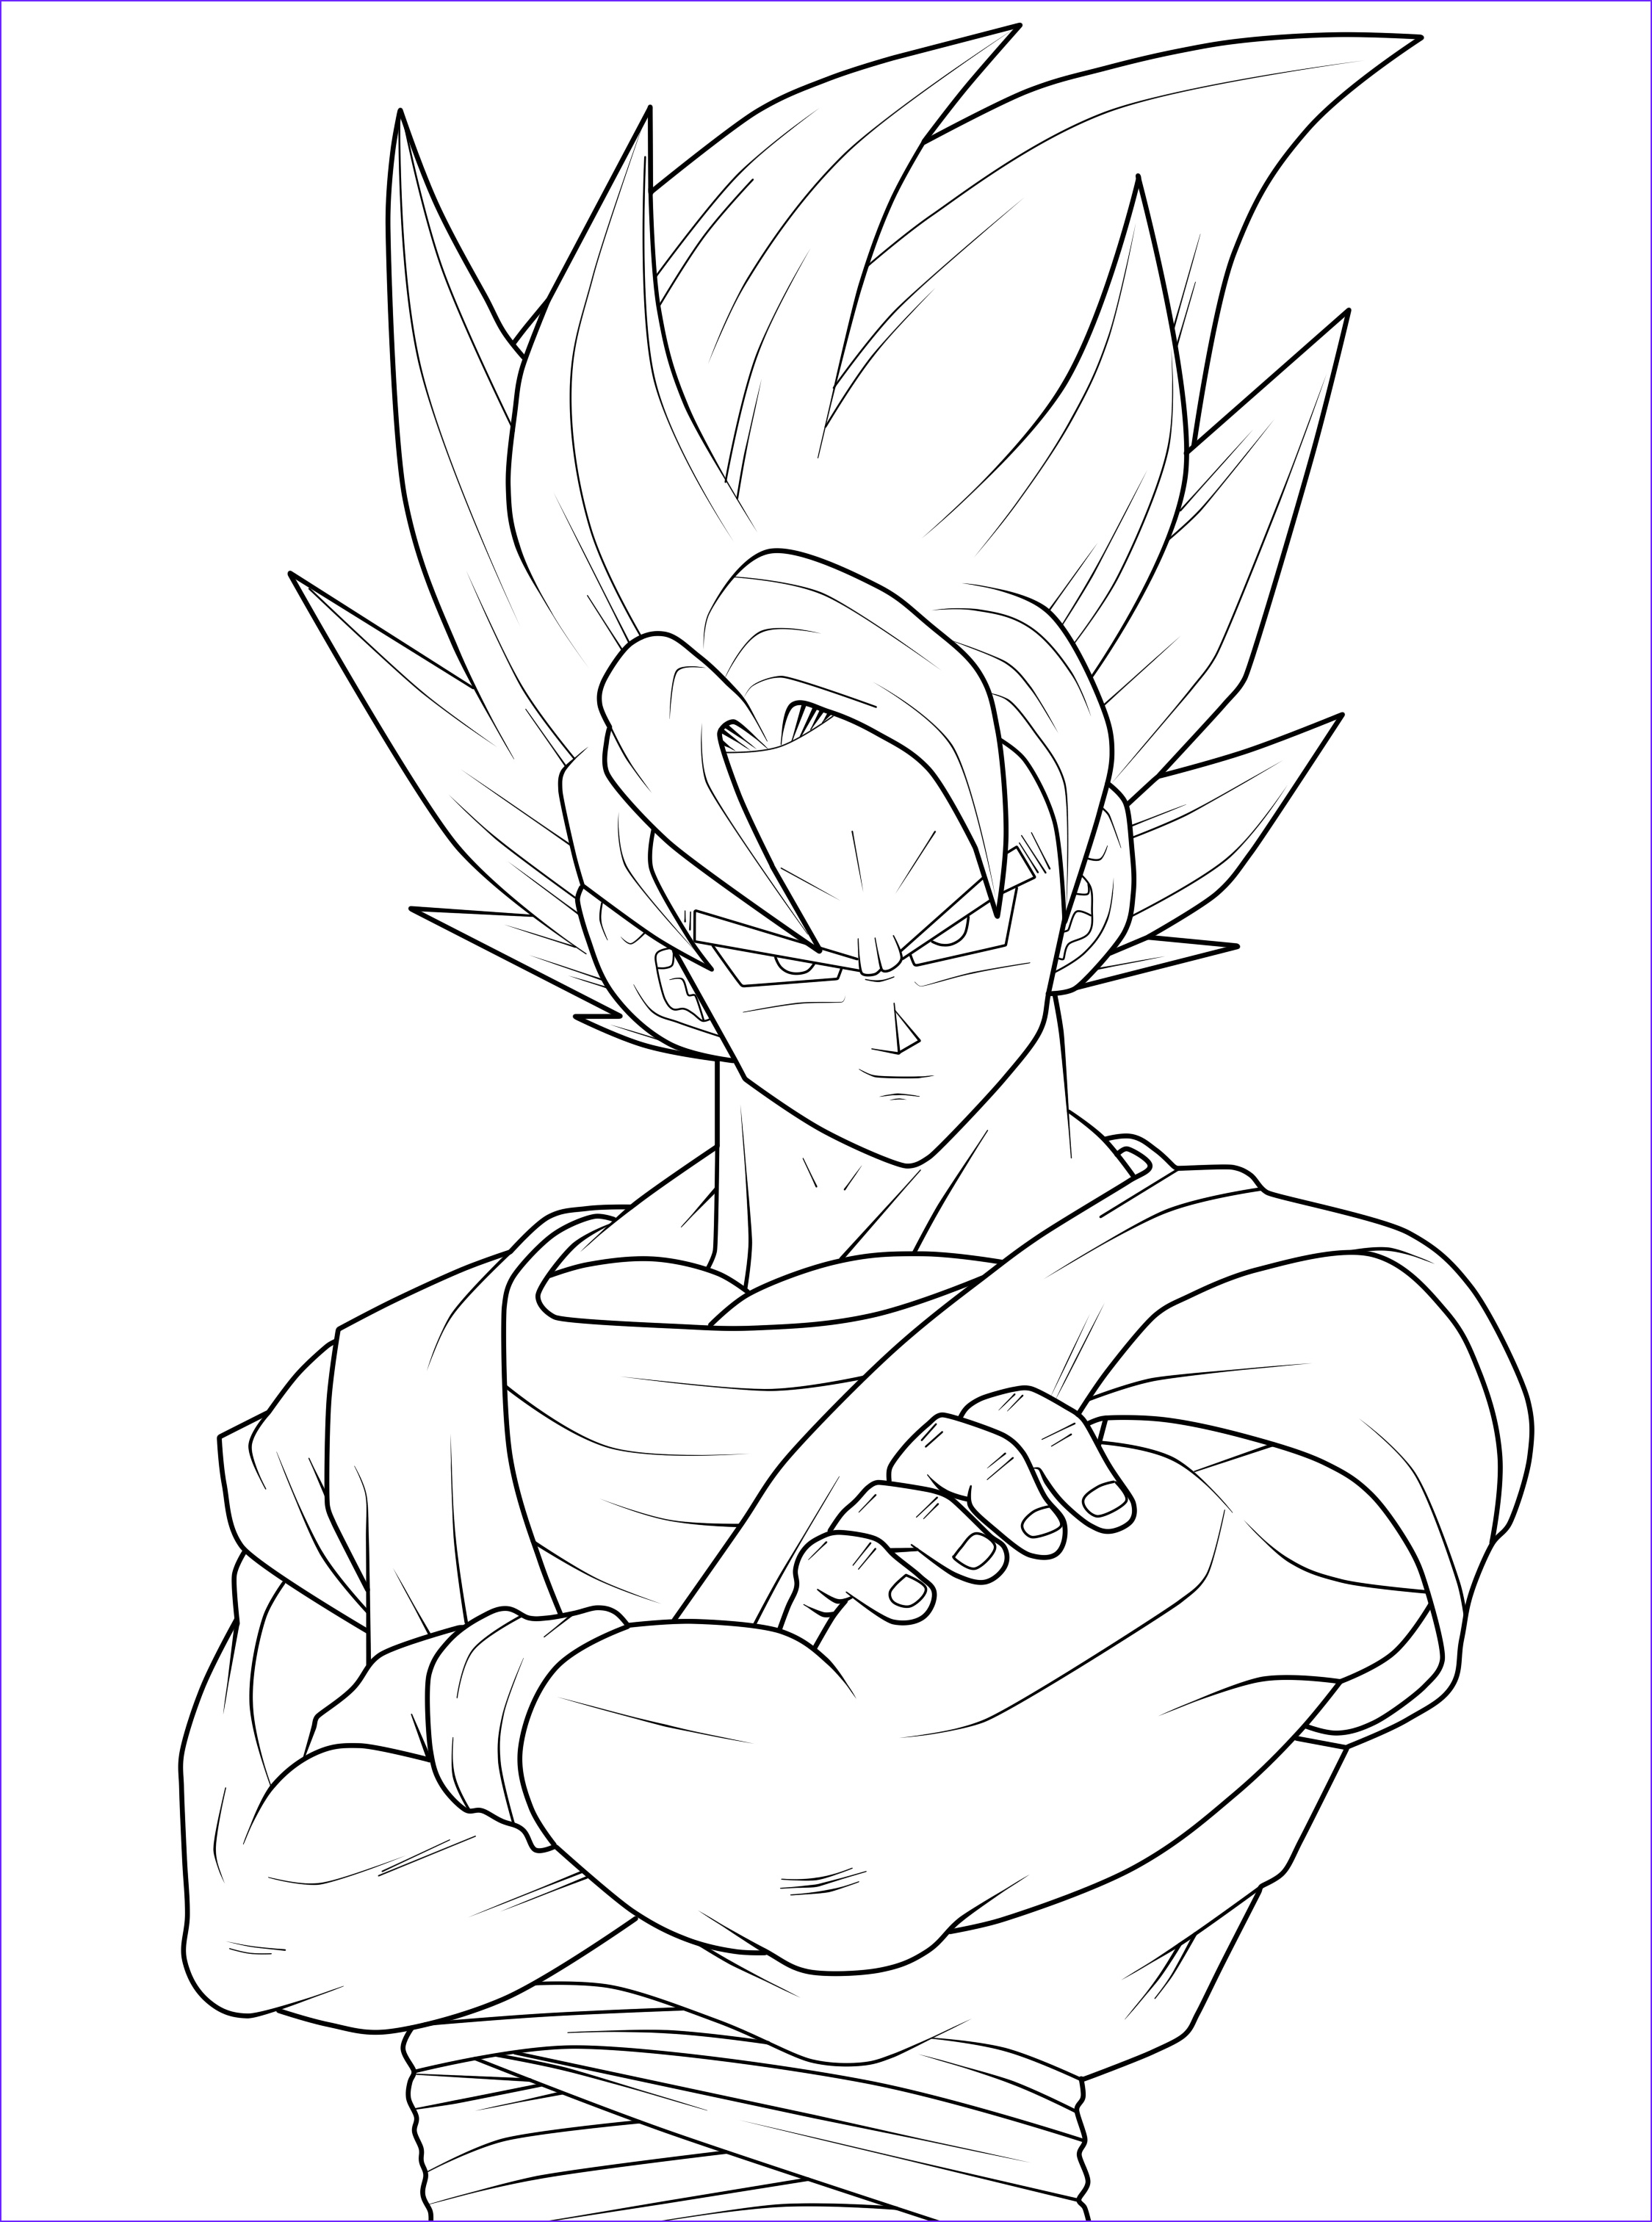 A to Z Coloring Pages New Photos Dragon Ball Z Coloring Pages Bestofcoloring